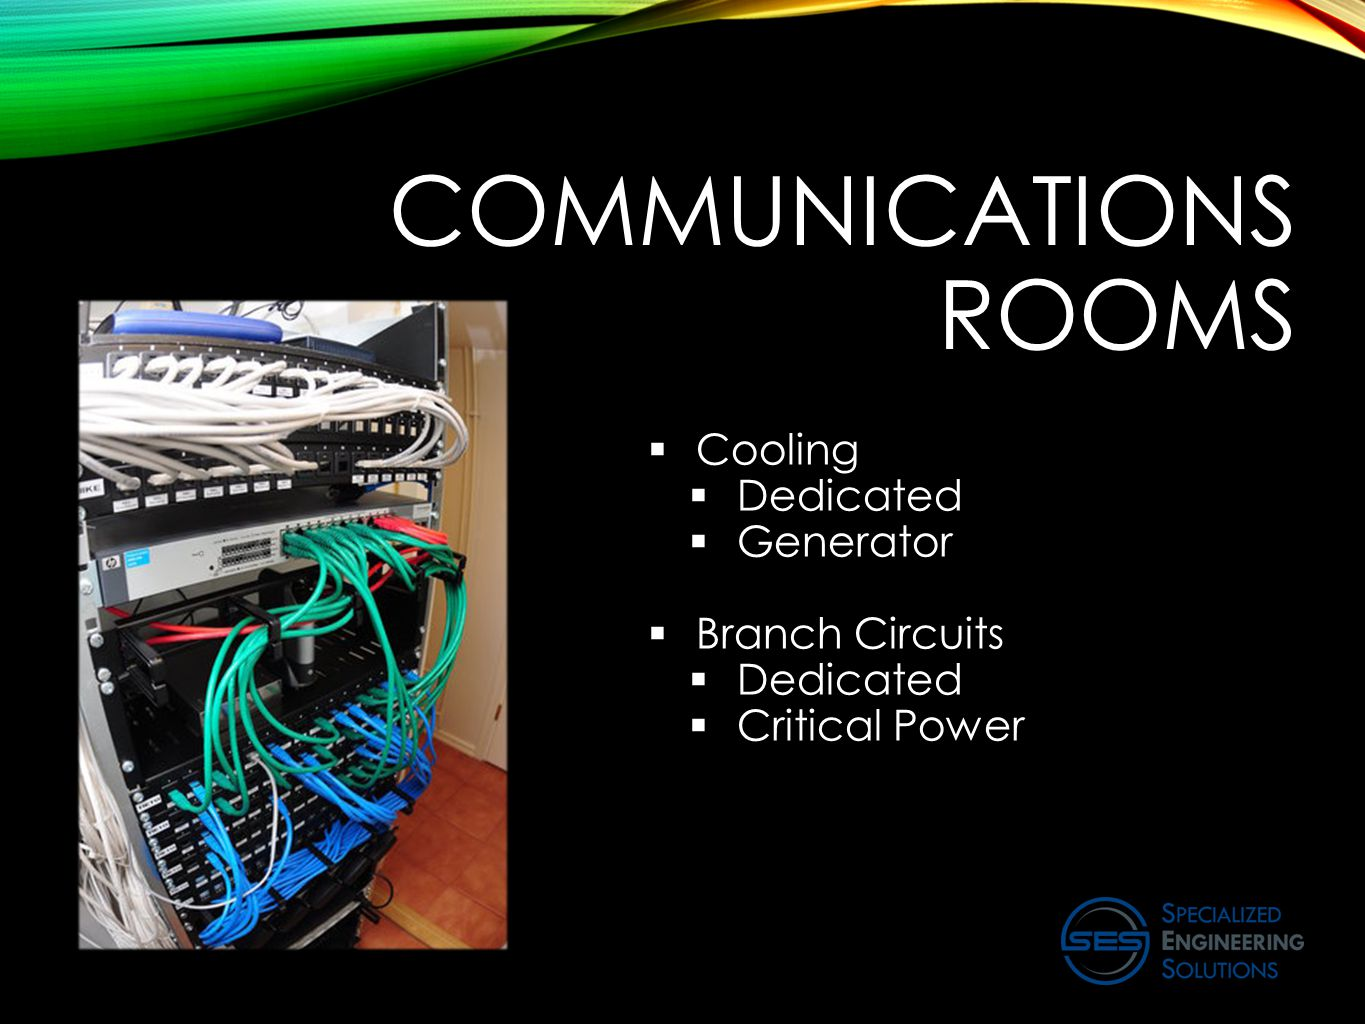 COMMUNICATIONS ROOMS  Cooling  Dedicated  Generator  Branch Circuits  Dedicated  Critical Power